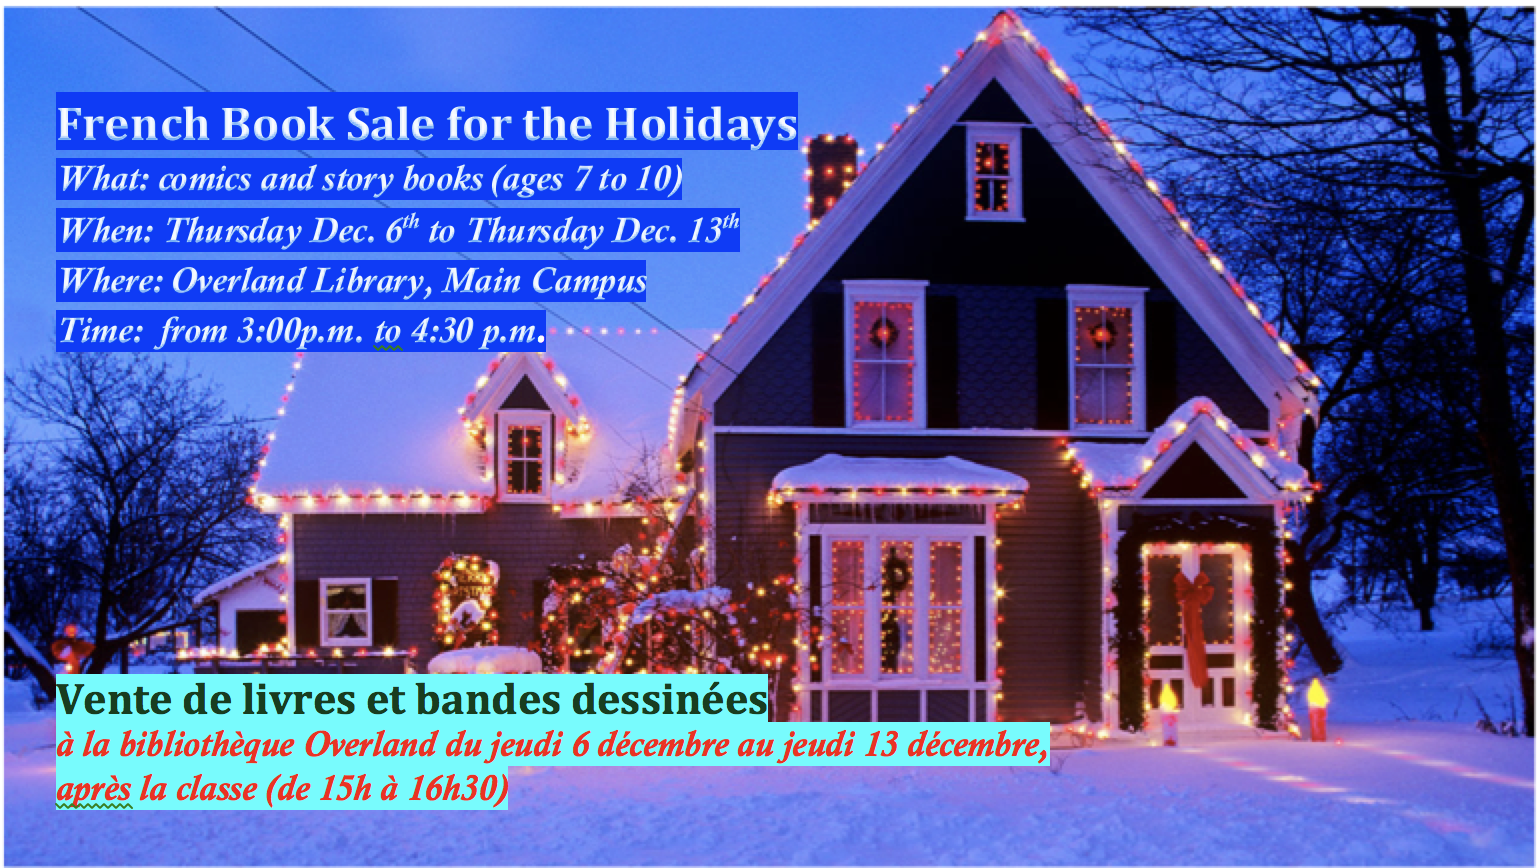 Holiday Boutique (Dec 6 ) and French Book Sale (